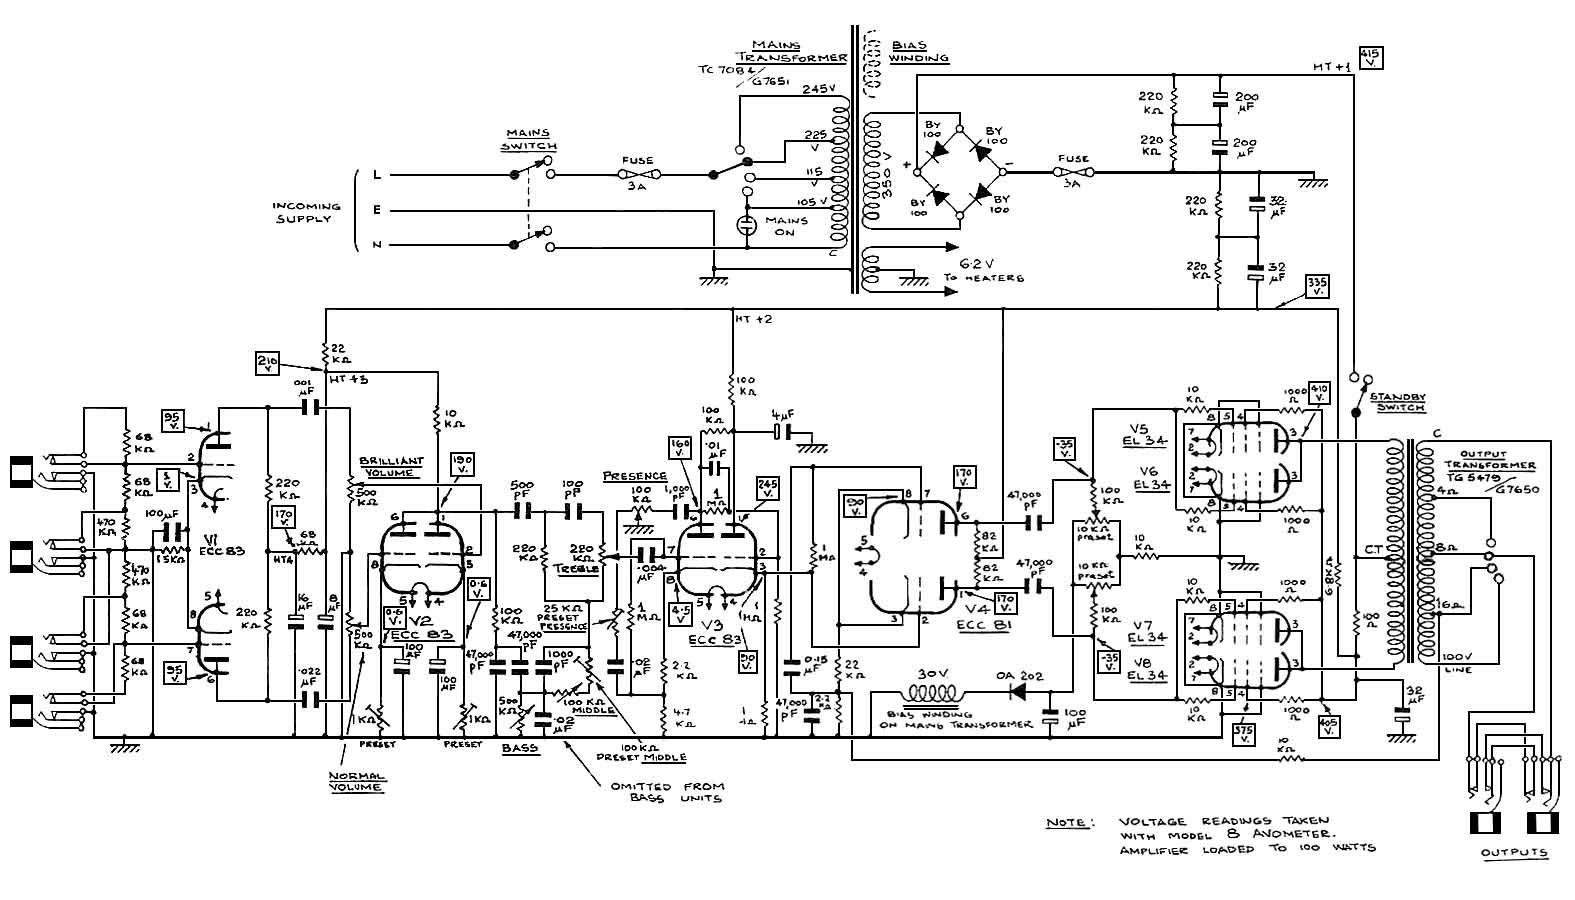 Amp Schematics on diagramming software, tube map, straight-line diagram, cross section, one-line diagram, block diagram, technical drawing, control flow diagram, data flow diagram, functional flow block diagram, function block diagram, schematic capture, piping and instrumentation diagram, ladder logic, electronic design automation, circuit diagram,